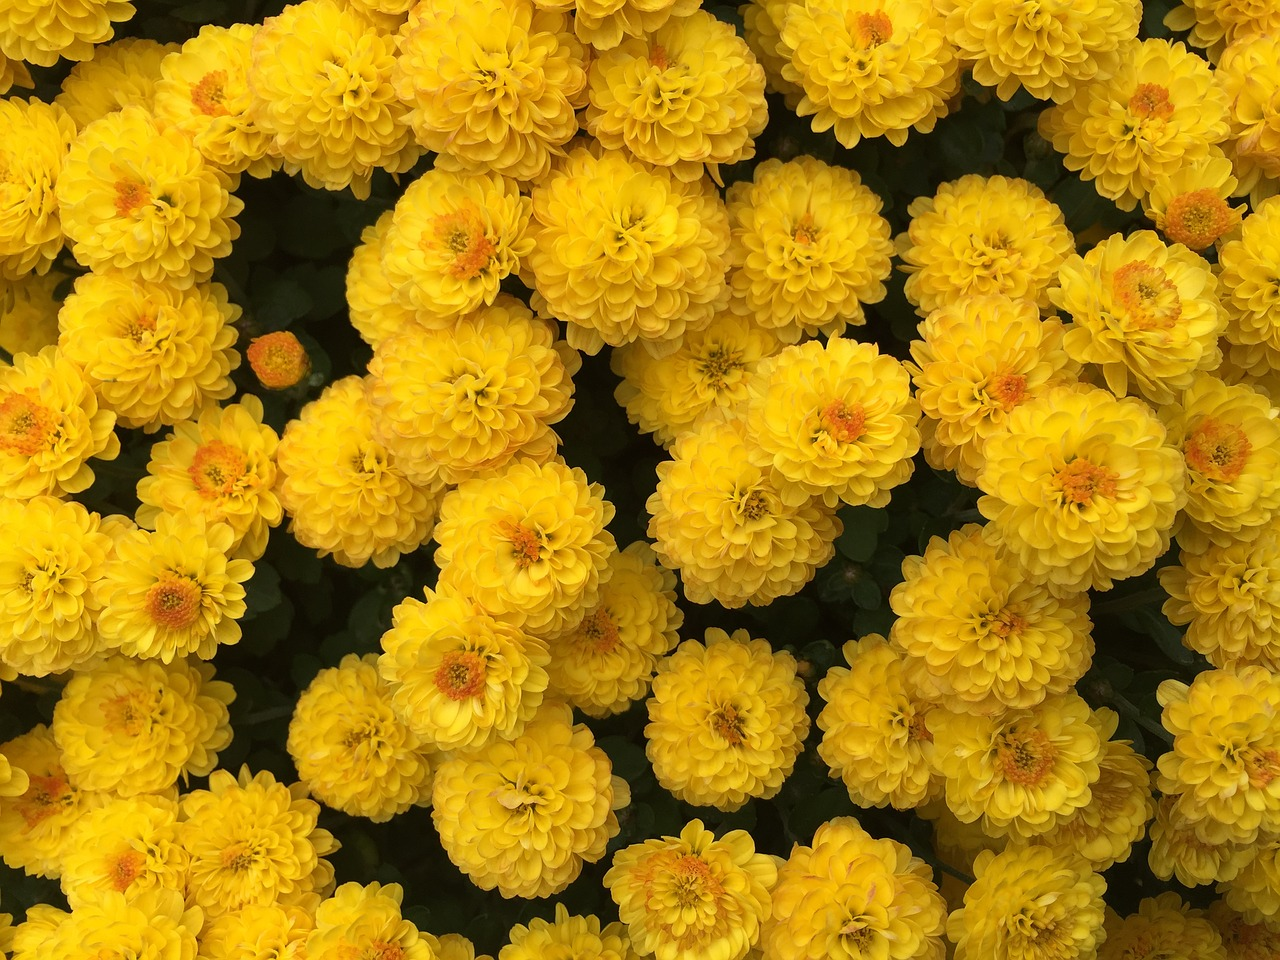 yellow chrysanthemum yellow autumn free photo